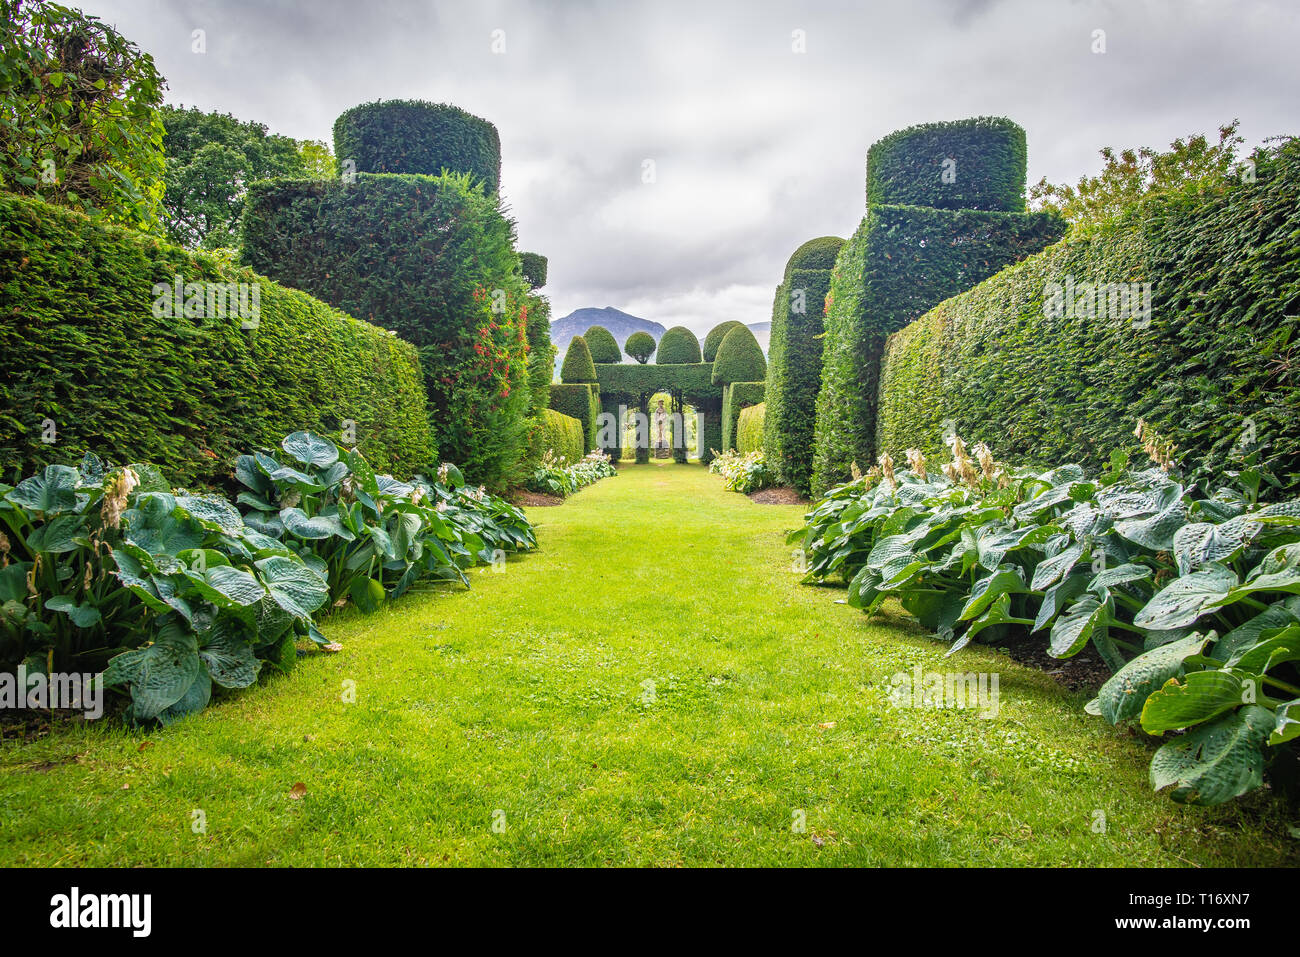 Central perspective on the oddly shaped yews and other shrubs in the garden of Plas Brondanw, Gwynedd, North Wales, United Kingdom - Stock Image